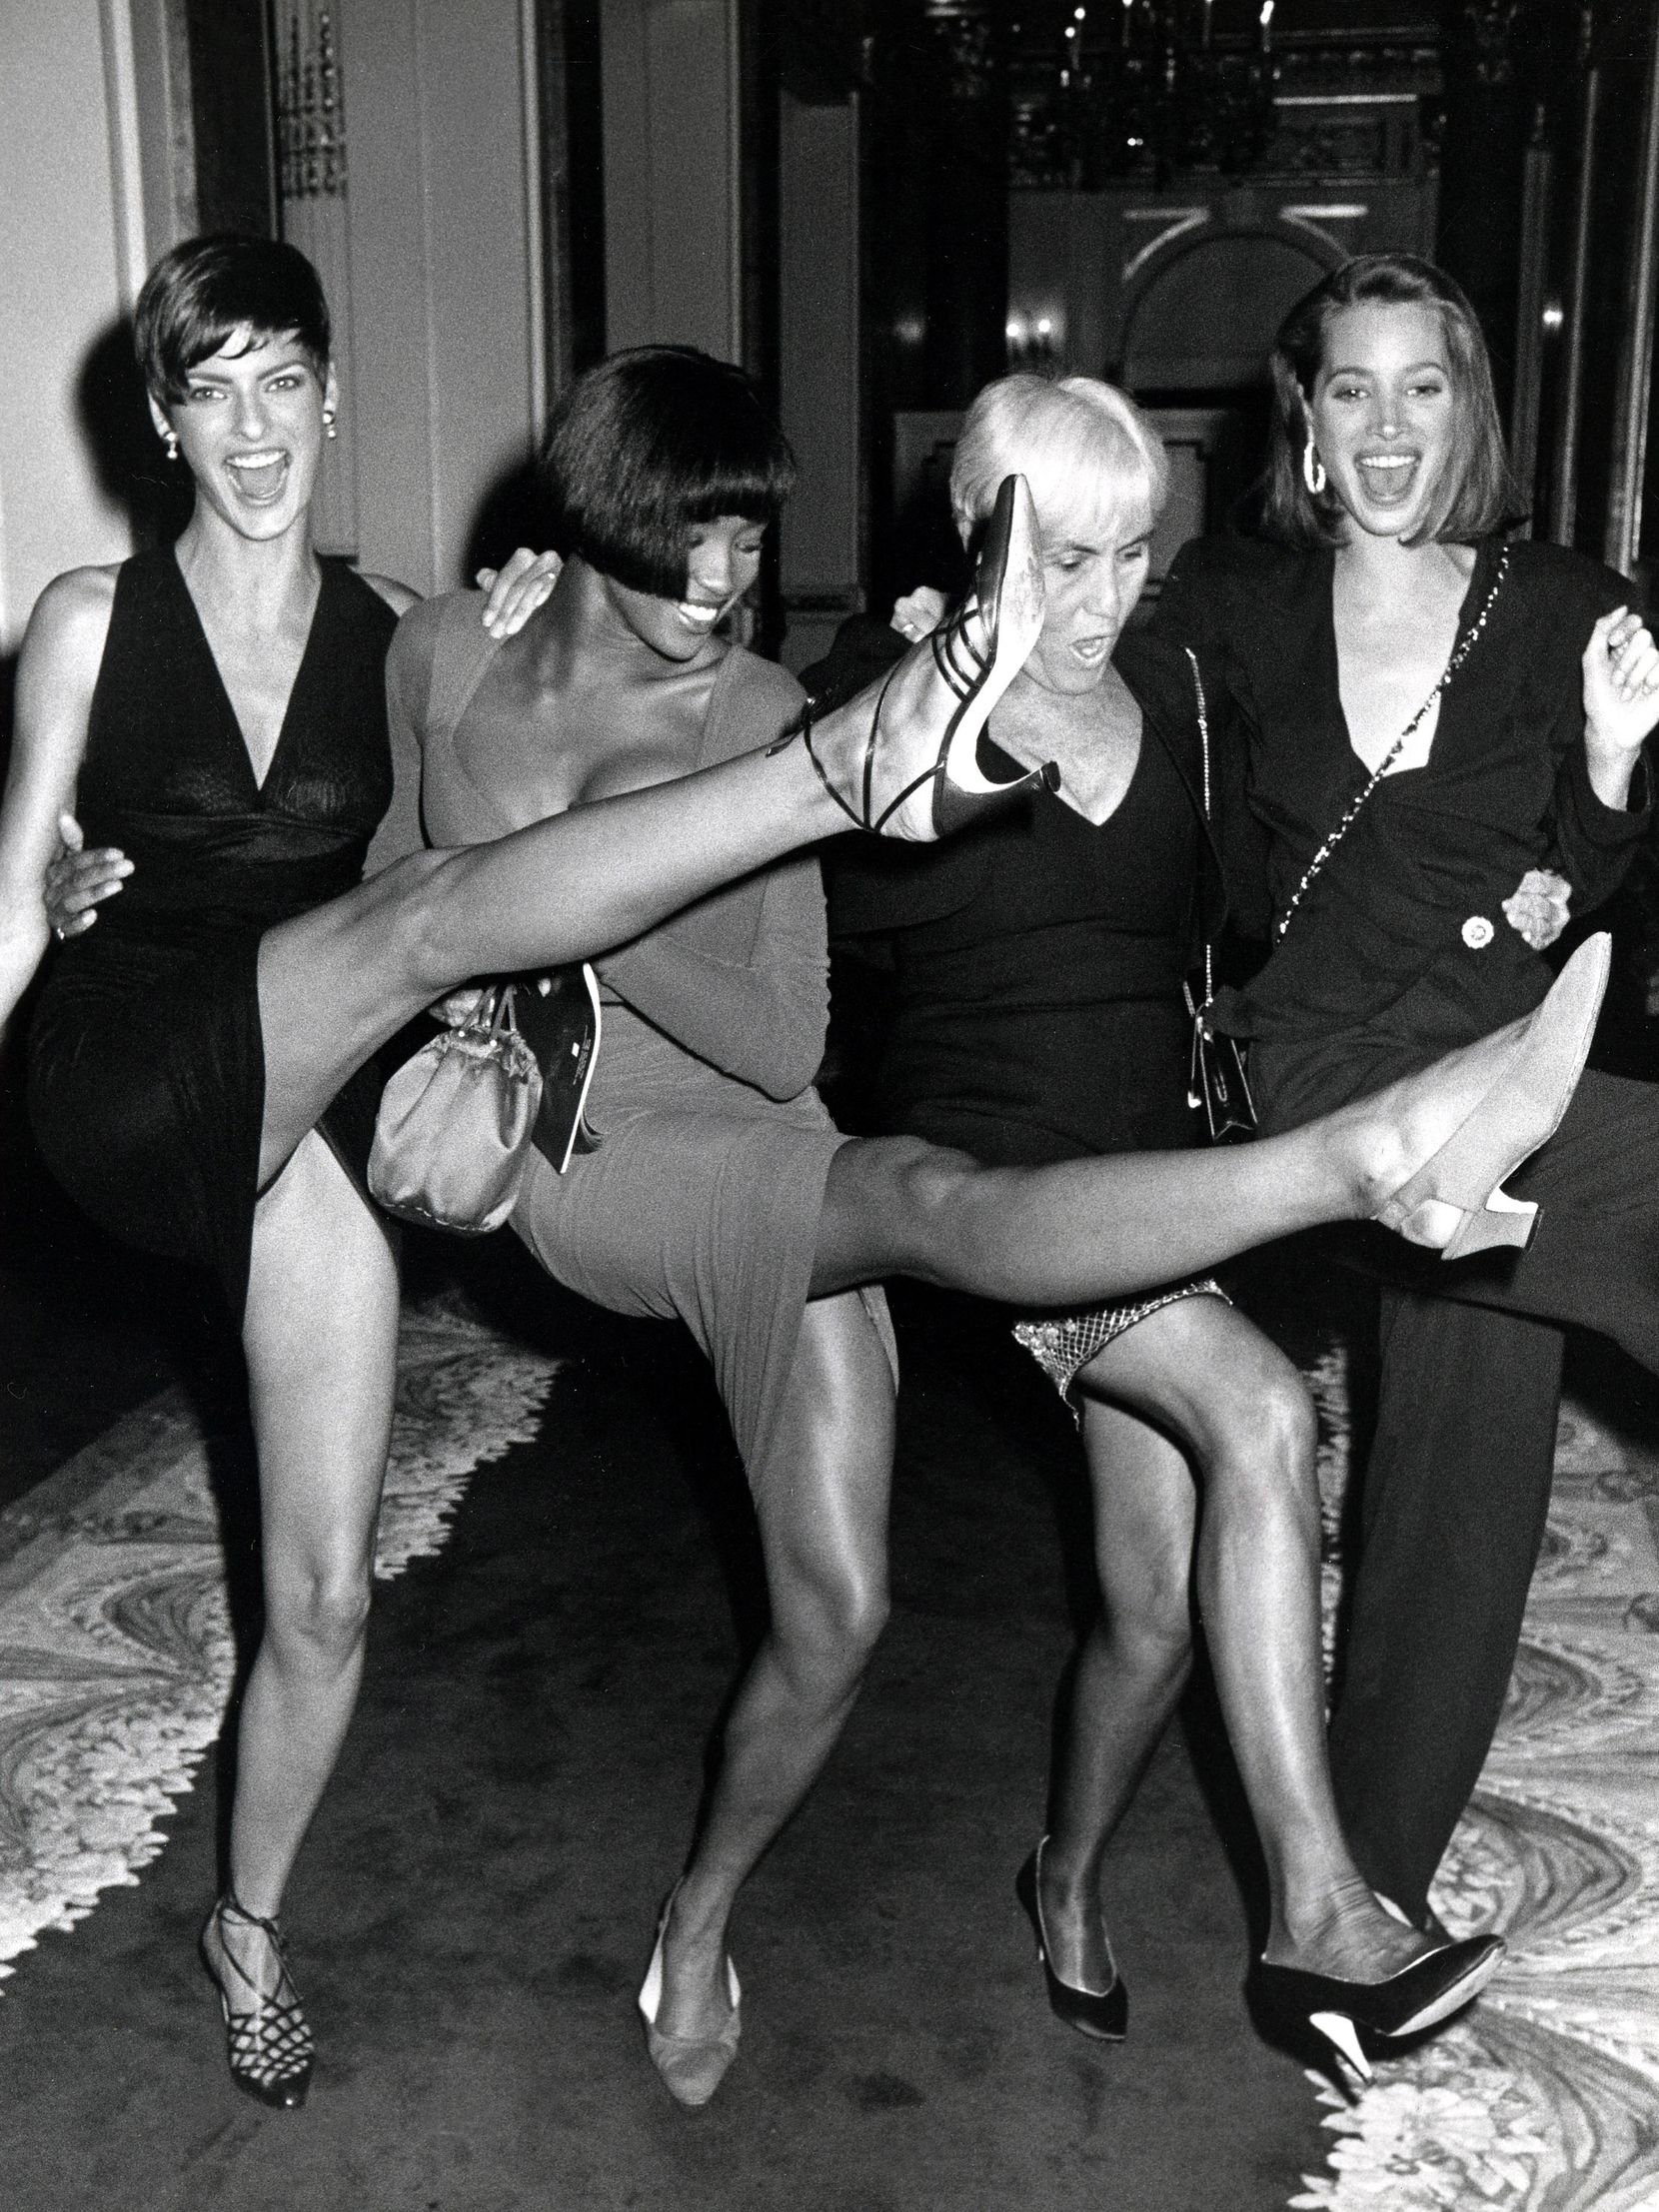 Linda Evangelista, Naomi Campbell, fashion editor Polly Mellon, and Christy Turlington at the The Plaza Hotel in New York City.